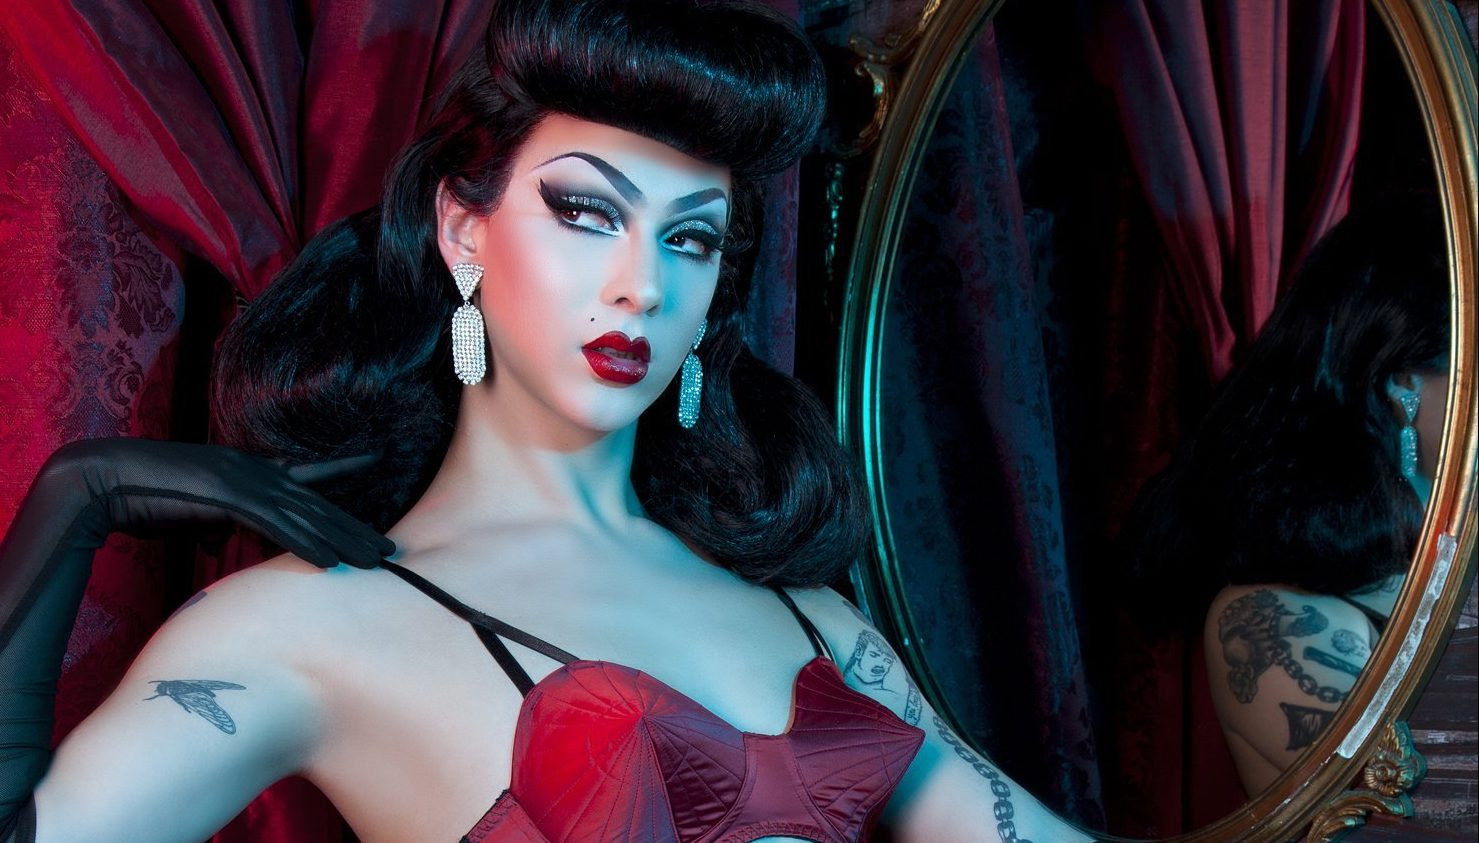 photo image Drag Performer Violet Chachki Featured in Lingerie Campaign